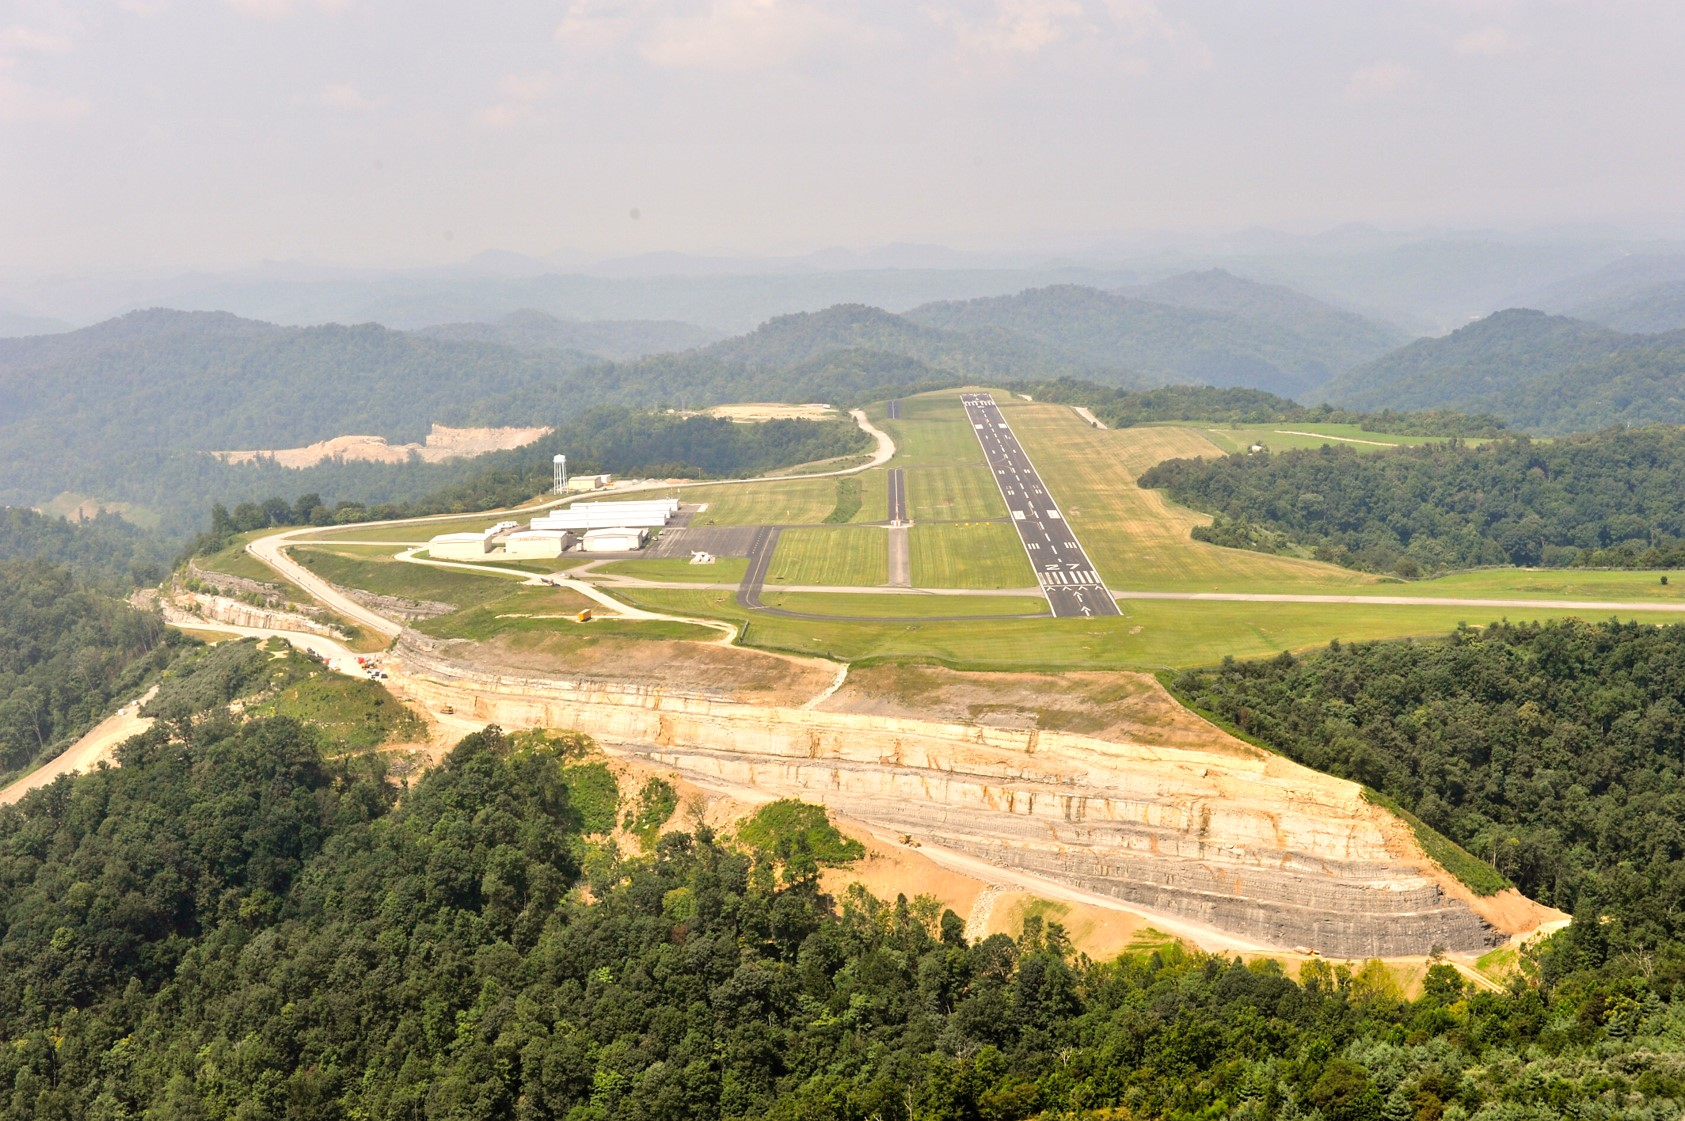 Main Photo For Pike County (Pikeville) Regional Airport